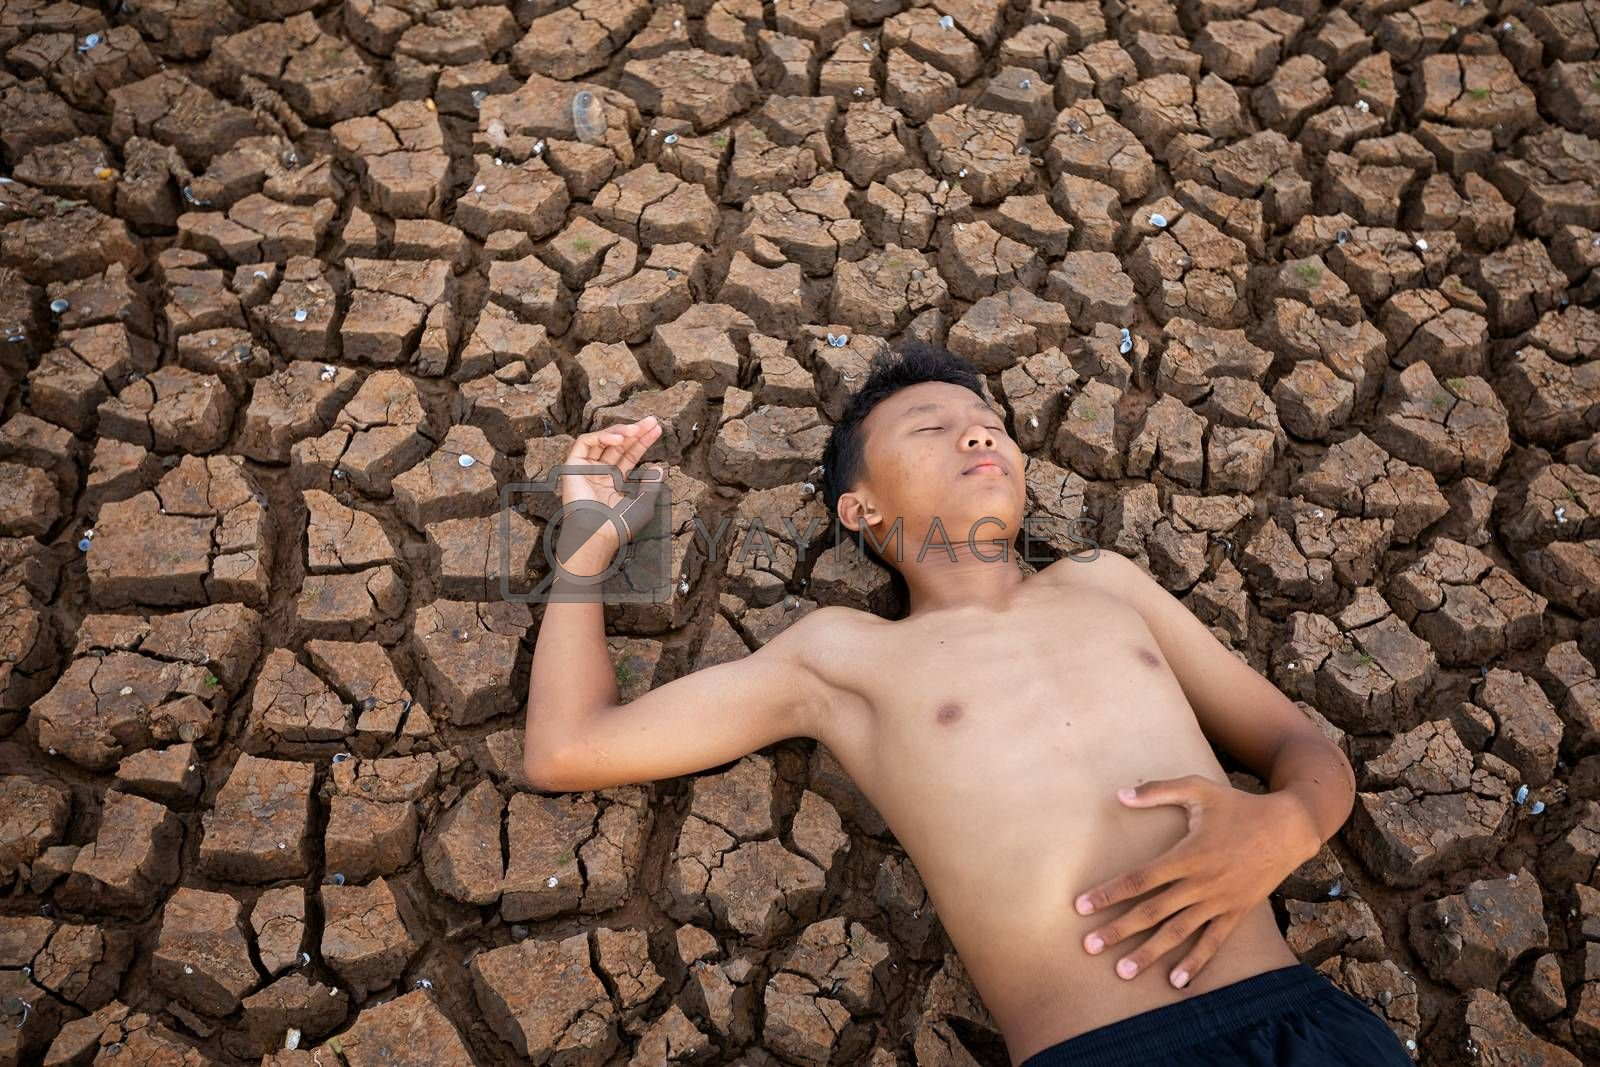 Sad a boy Lying  on cracked earth waiting for the hope of the sky to rain. Affected of global warming made climate change. Water shortage and drought concept.